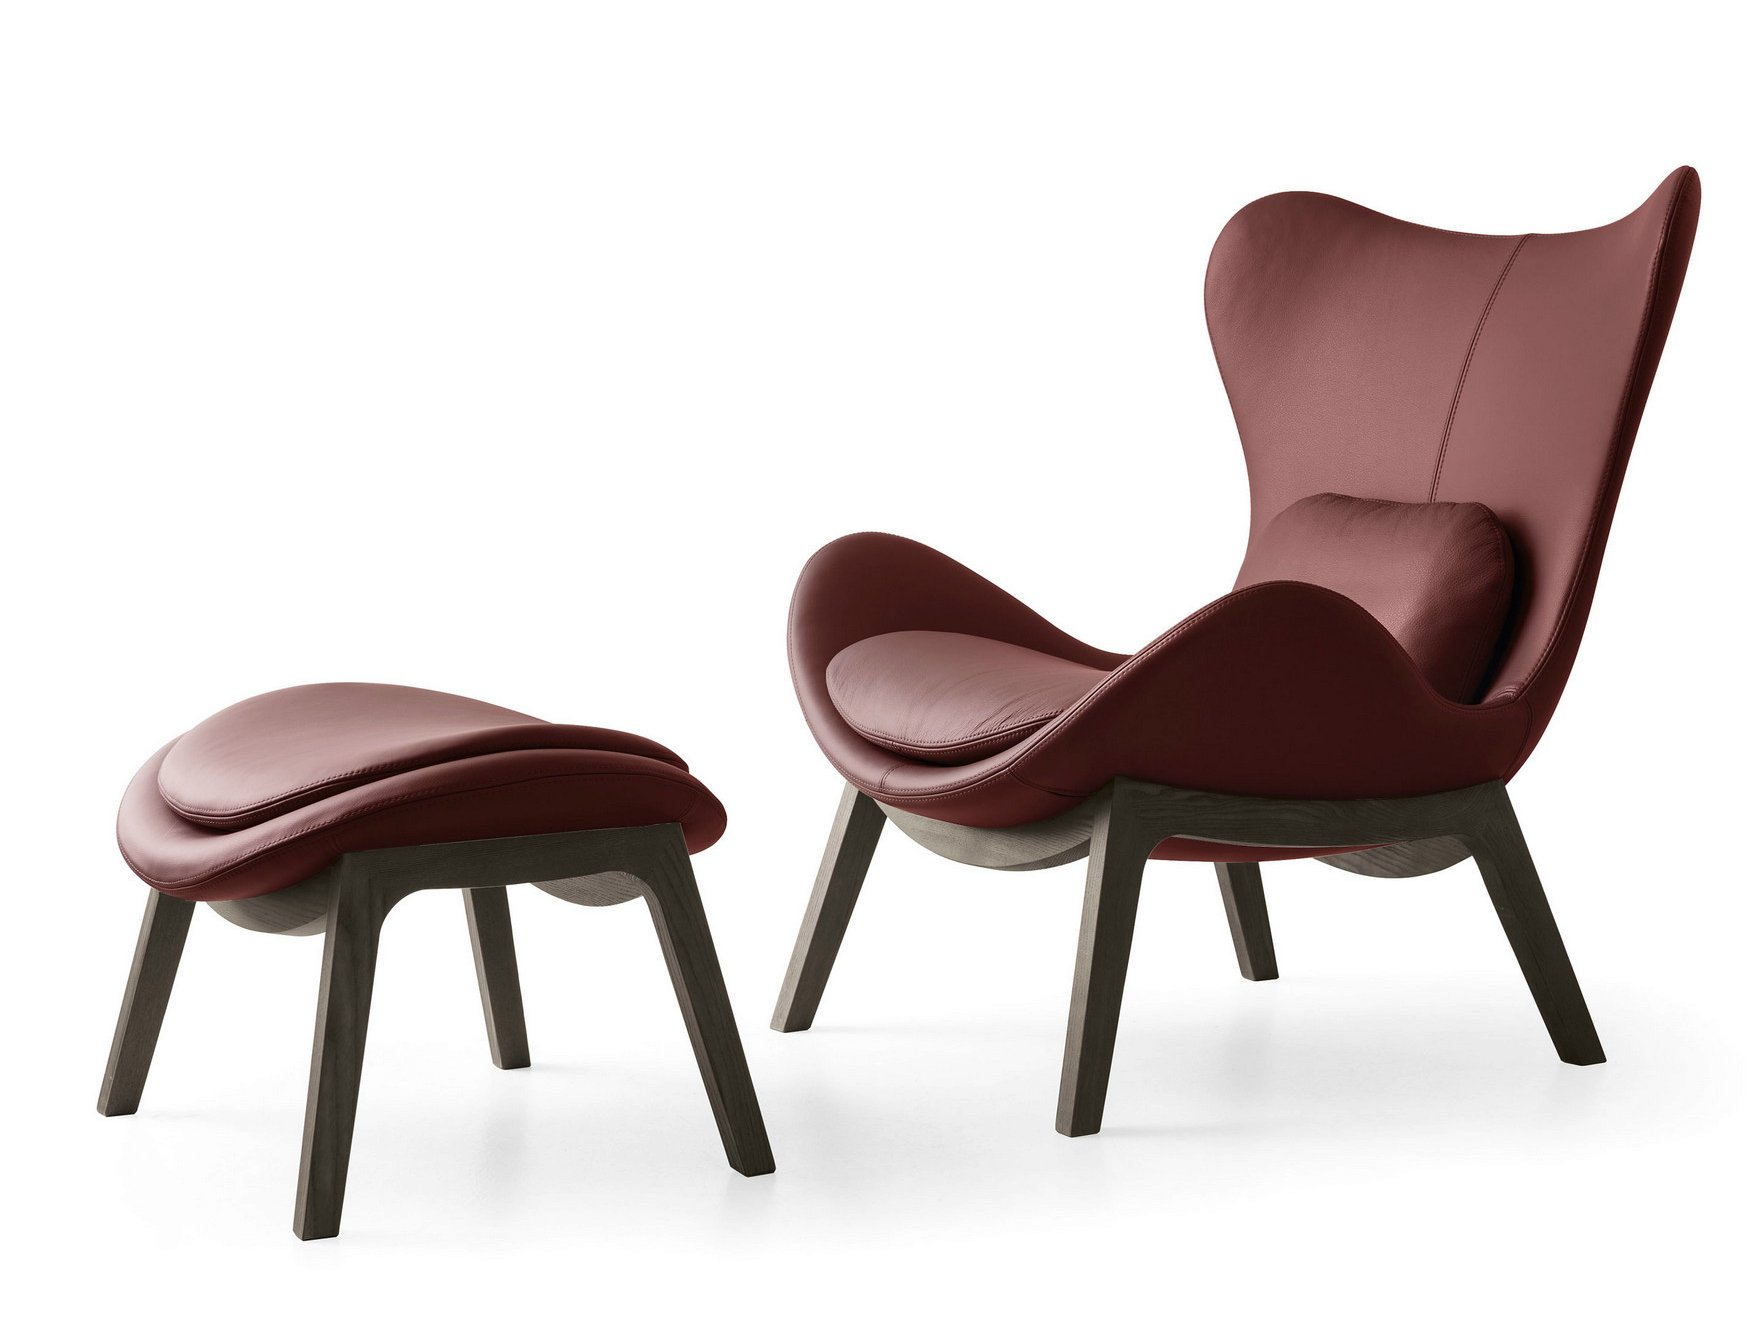 LAZY Lounge Chair by Michele Menescardi for Calligaris